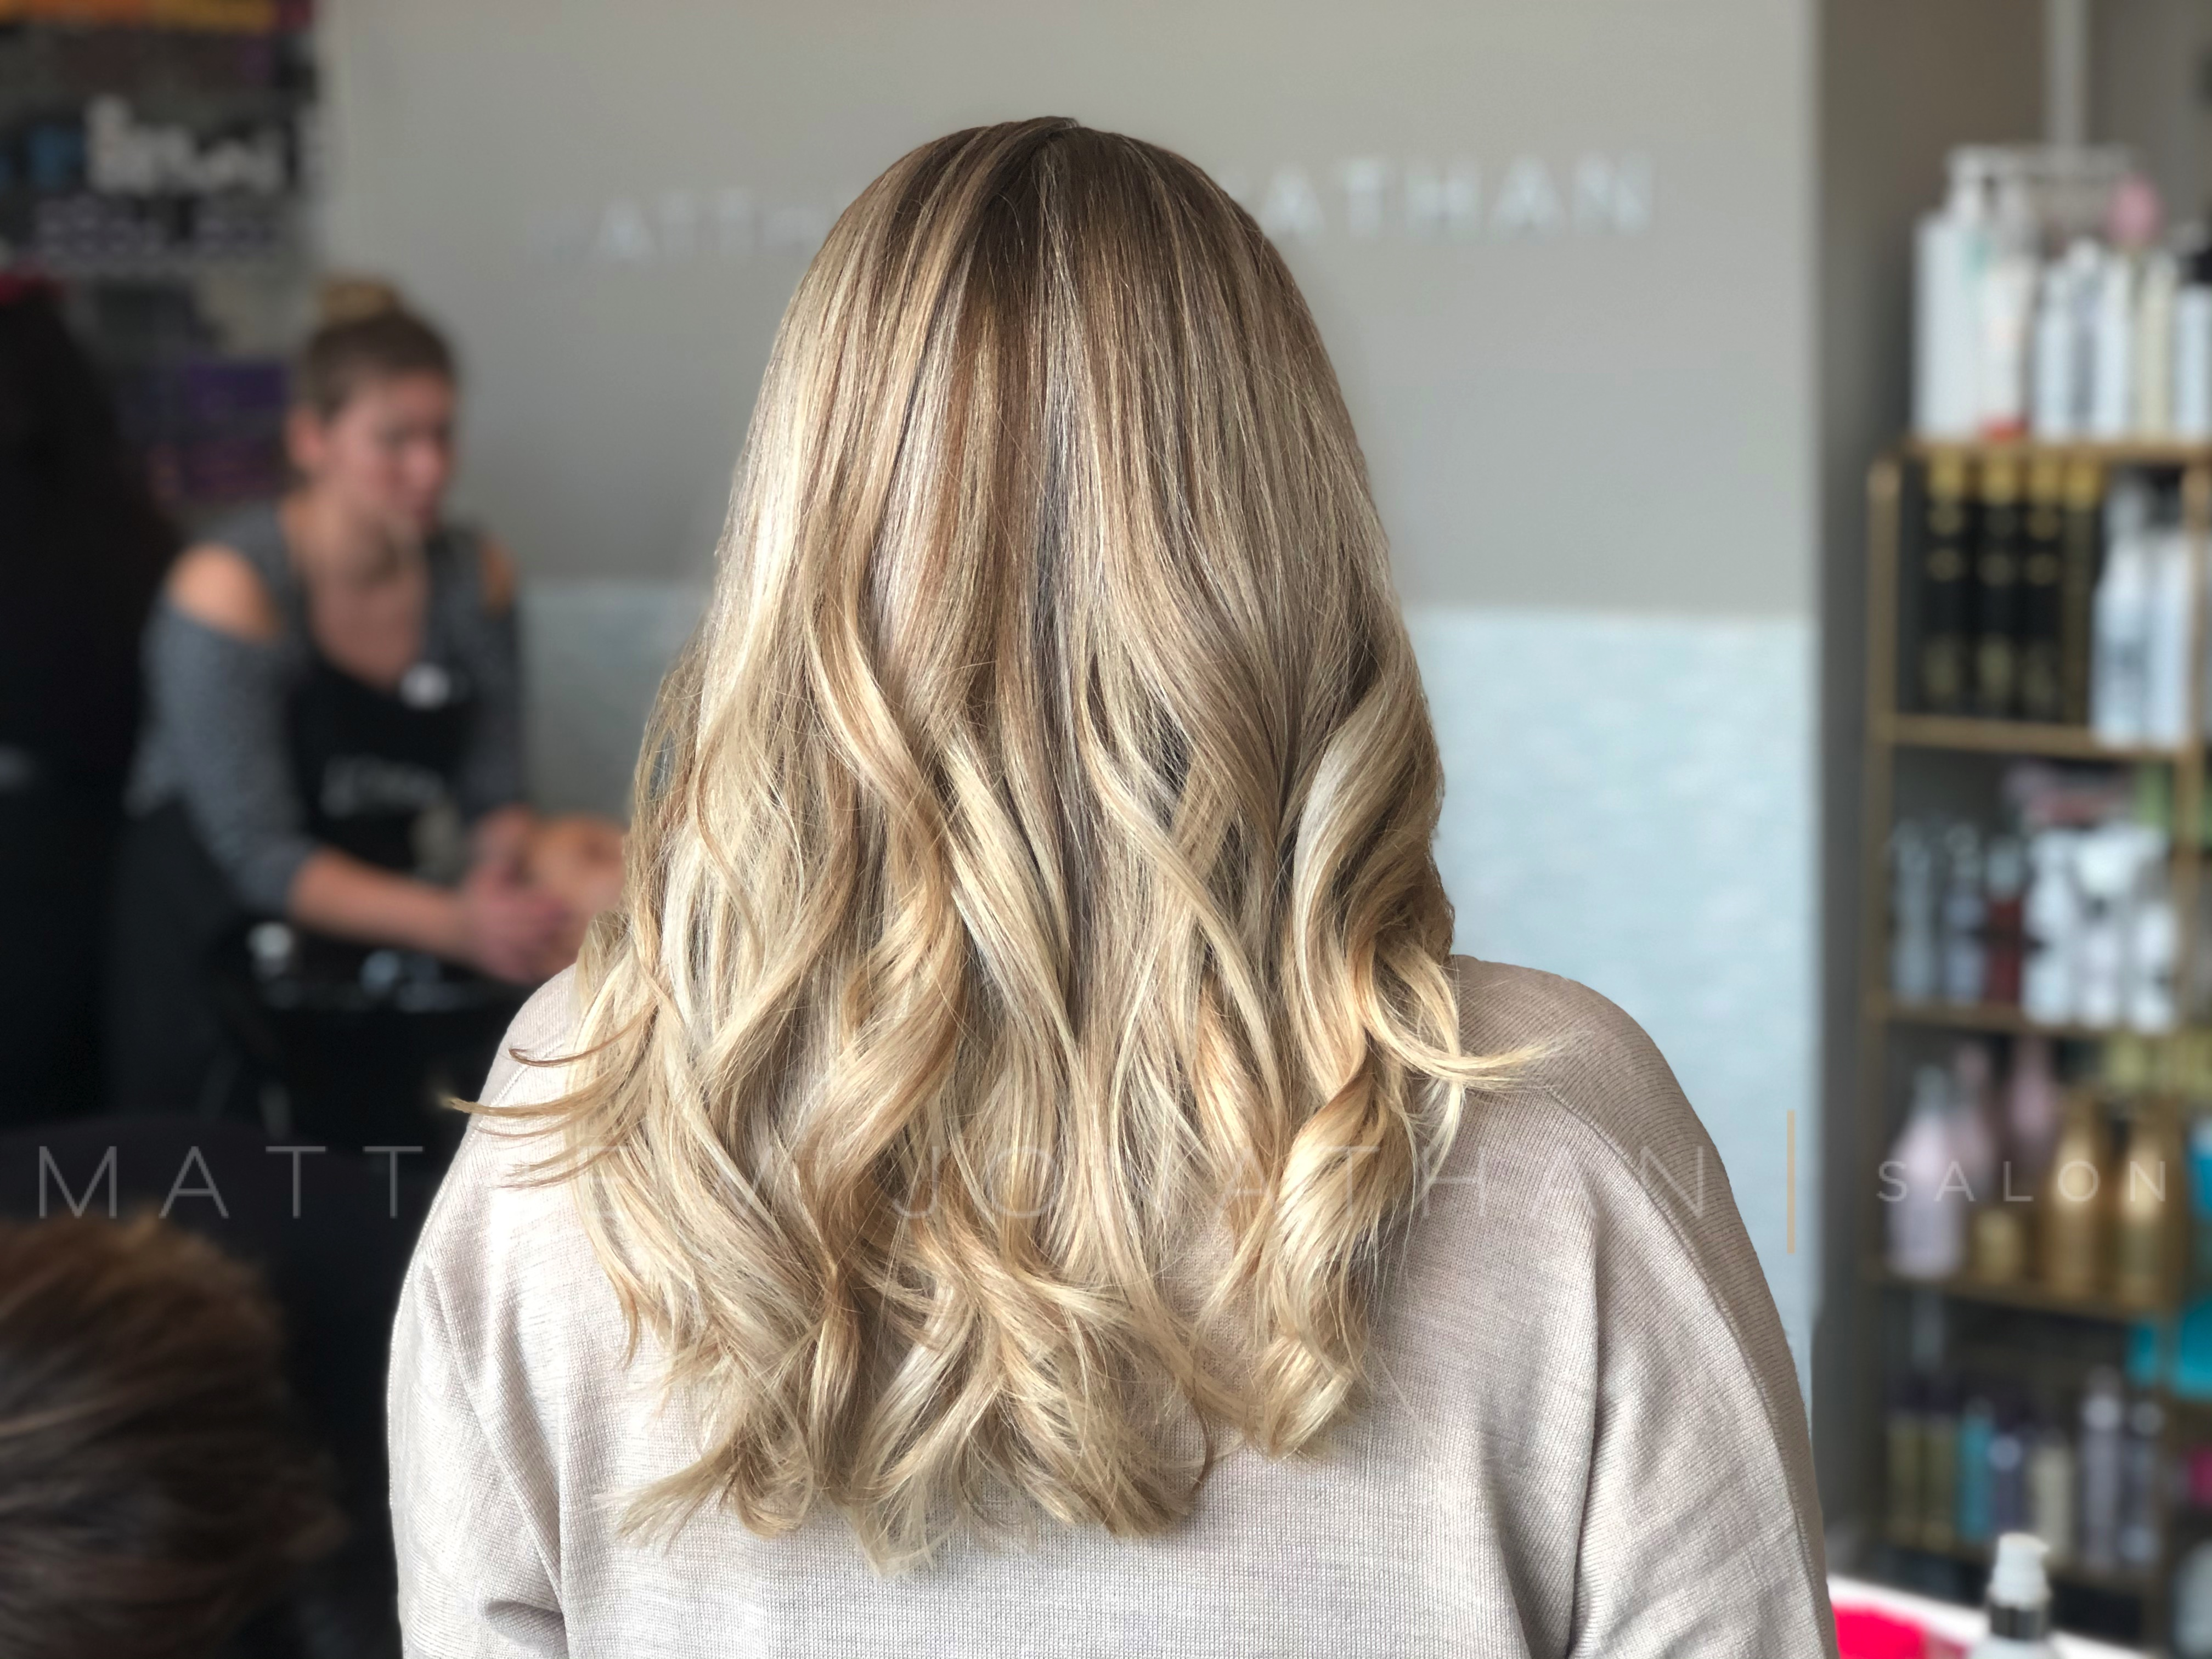 #blondehighlights #blondesdoitbetter #brunetteshavemorefun #torontohairstylists #lorealprofessionnel #olaplex #olaplexhair #cutehairstyles #balayageombrehair #ombrehairstyle #balayageoakville #olaplexlove #instahairstyle #blondebalayagehighlights #sombrehair #hairpainting #paintedhair #haircolors #colourmelt #colormelting #rootshadow #matthewjonathan #modernsalonandspa #lovemyhair